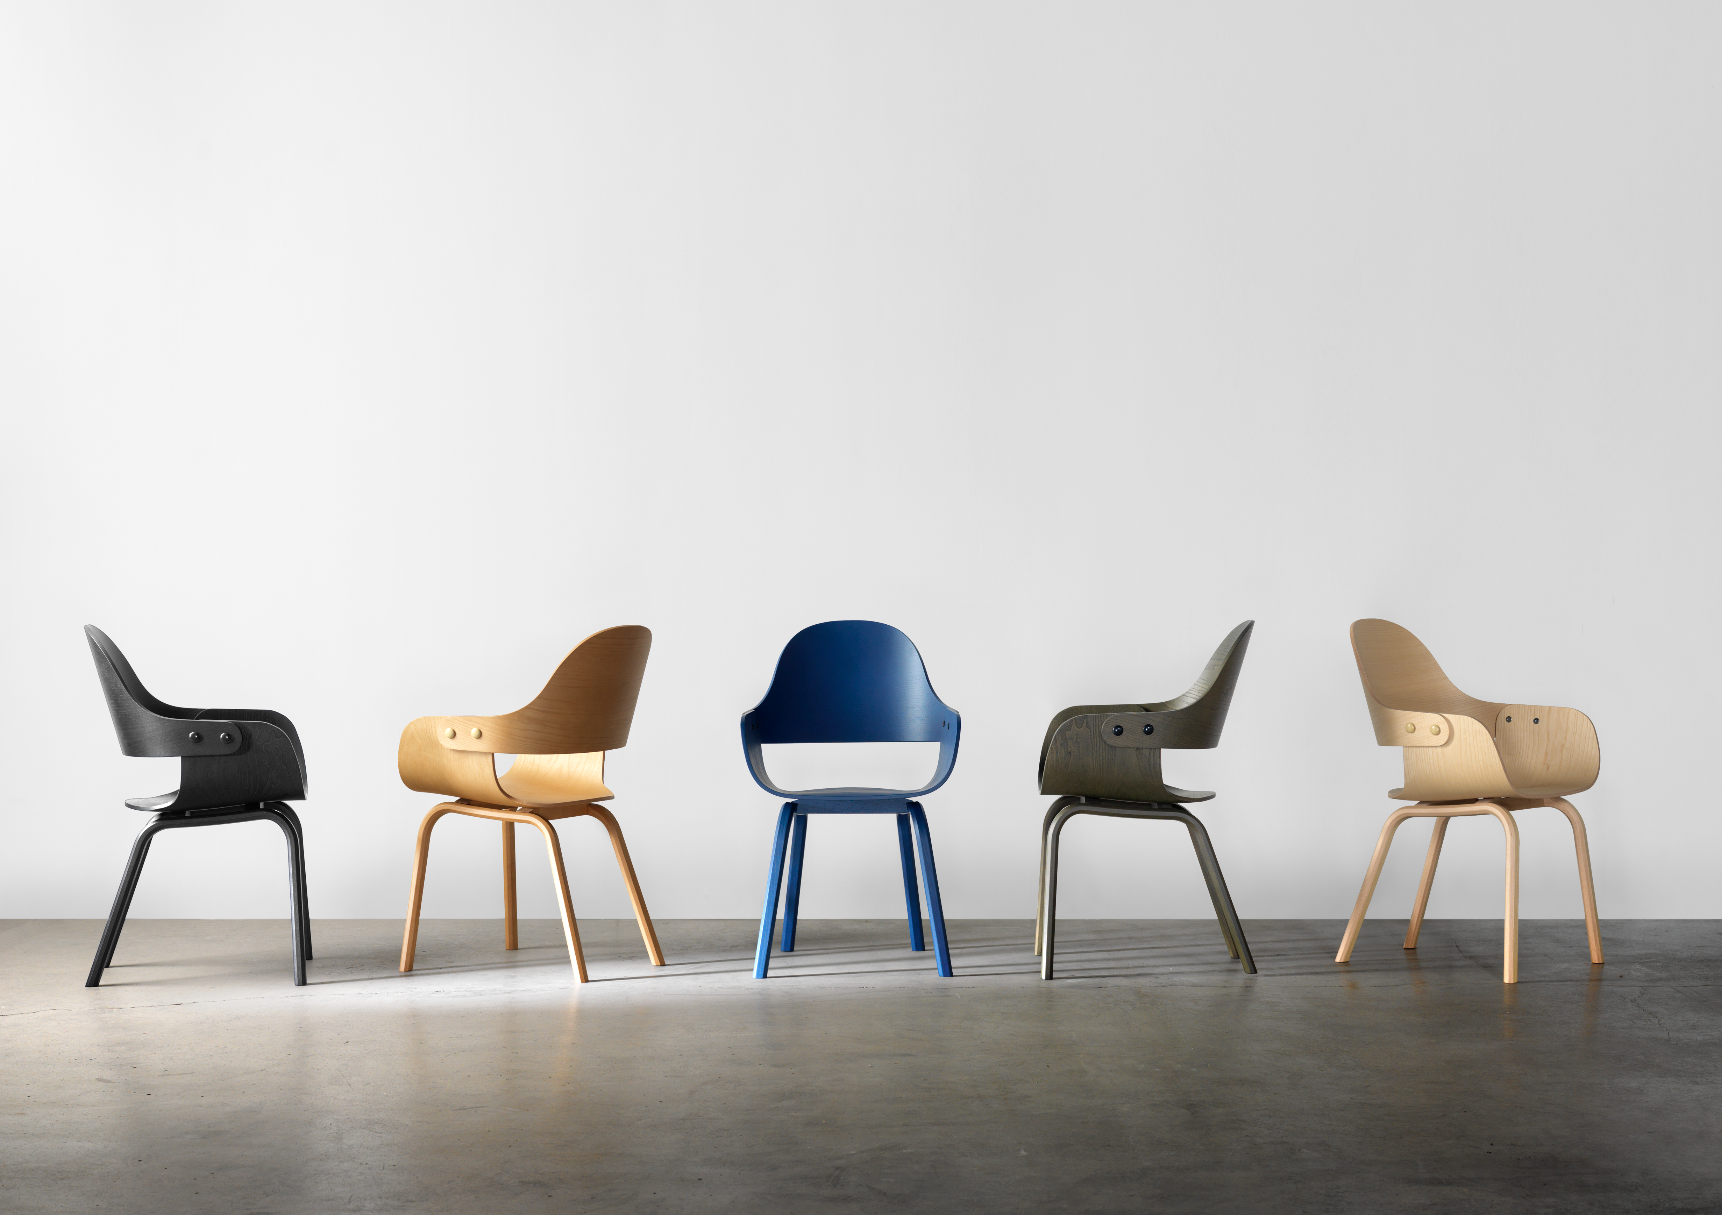 Showtime nude chair by jaime hayon for bd barcelona design stoel